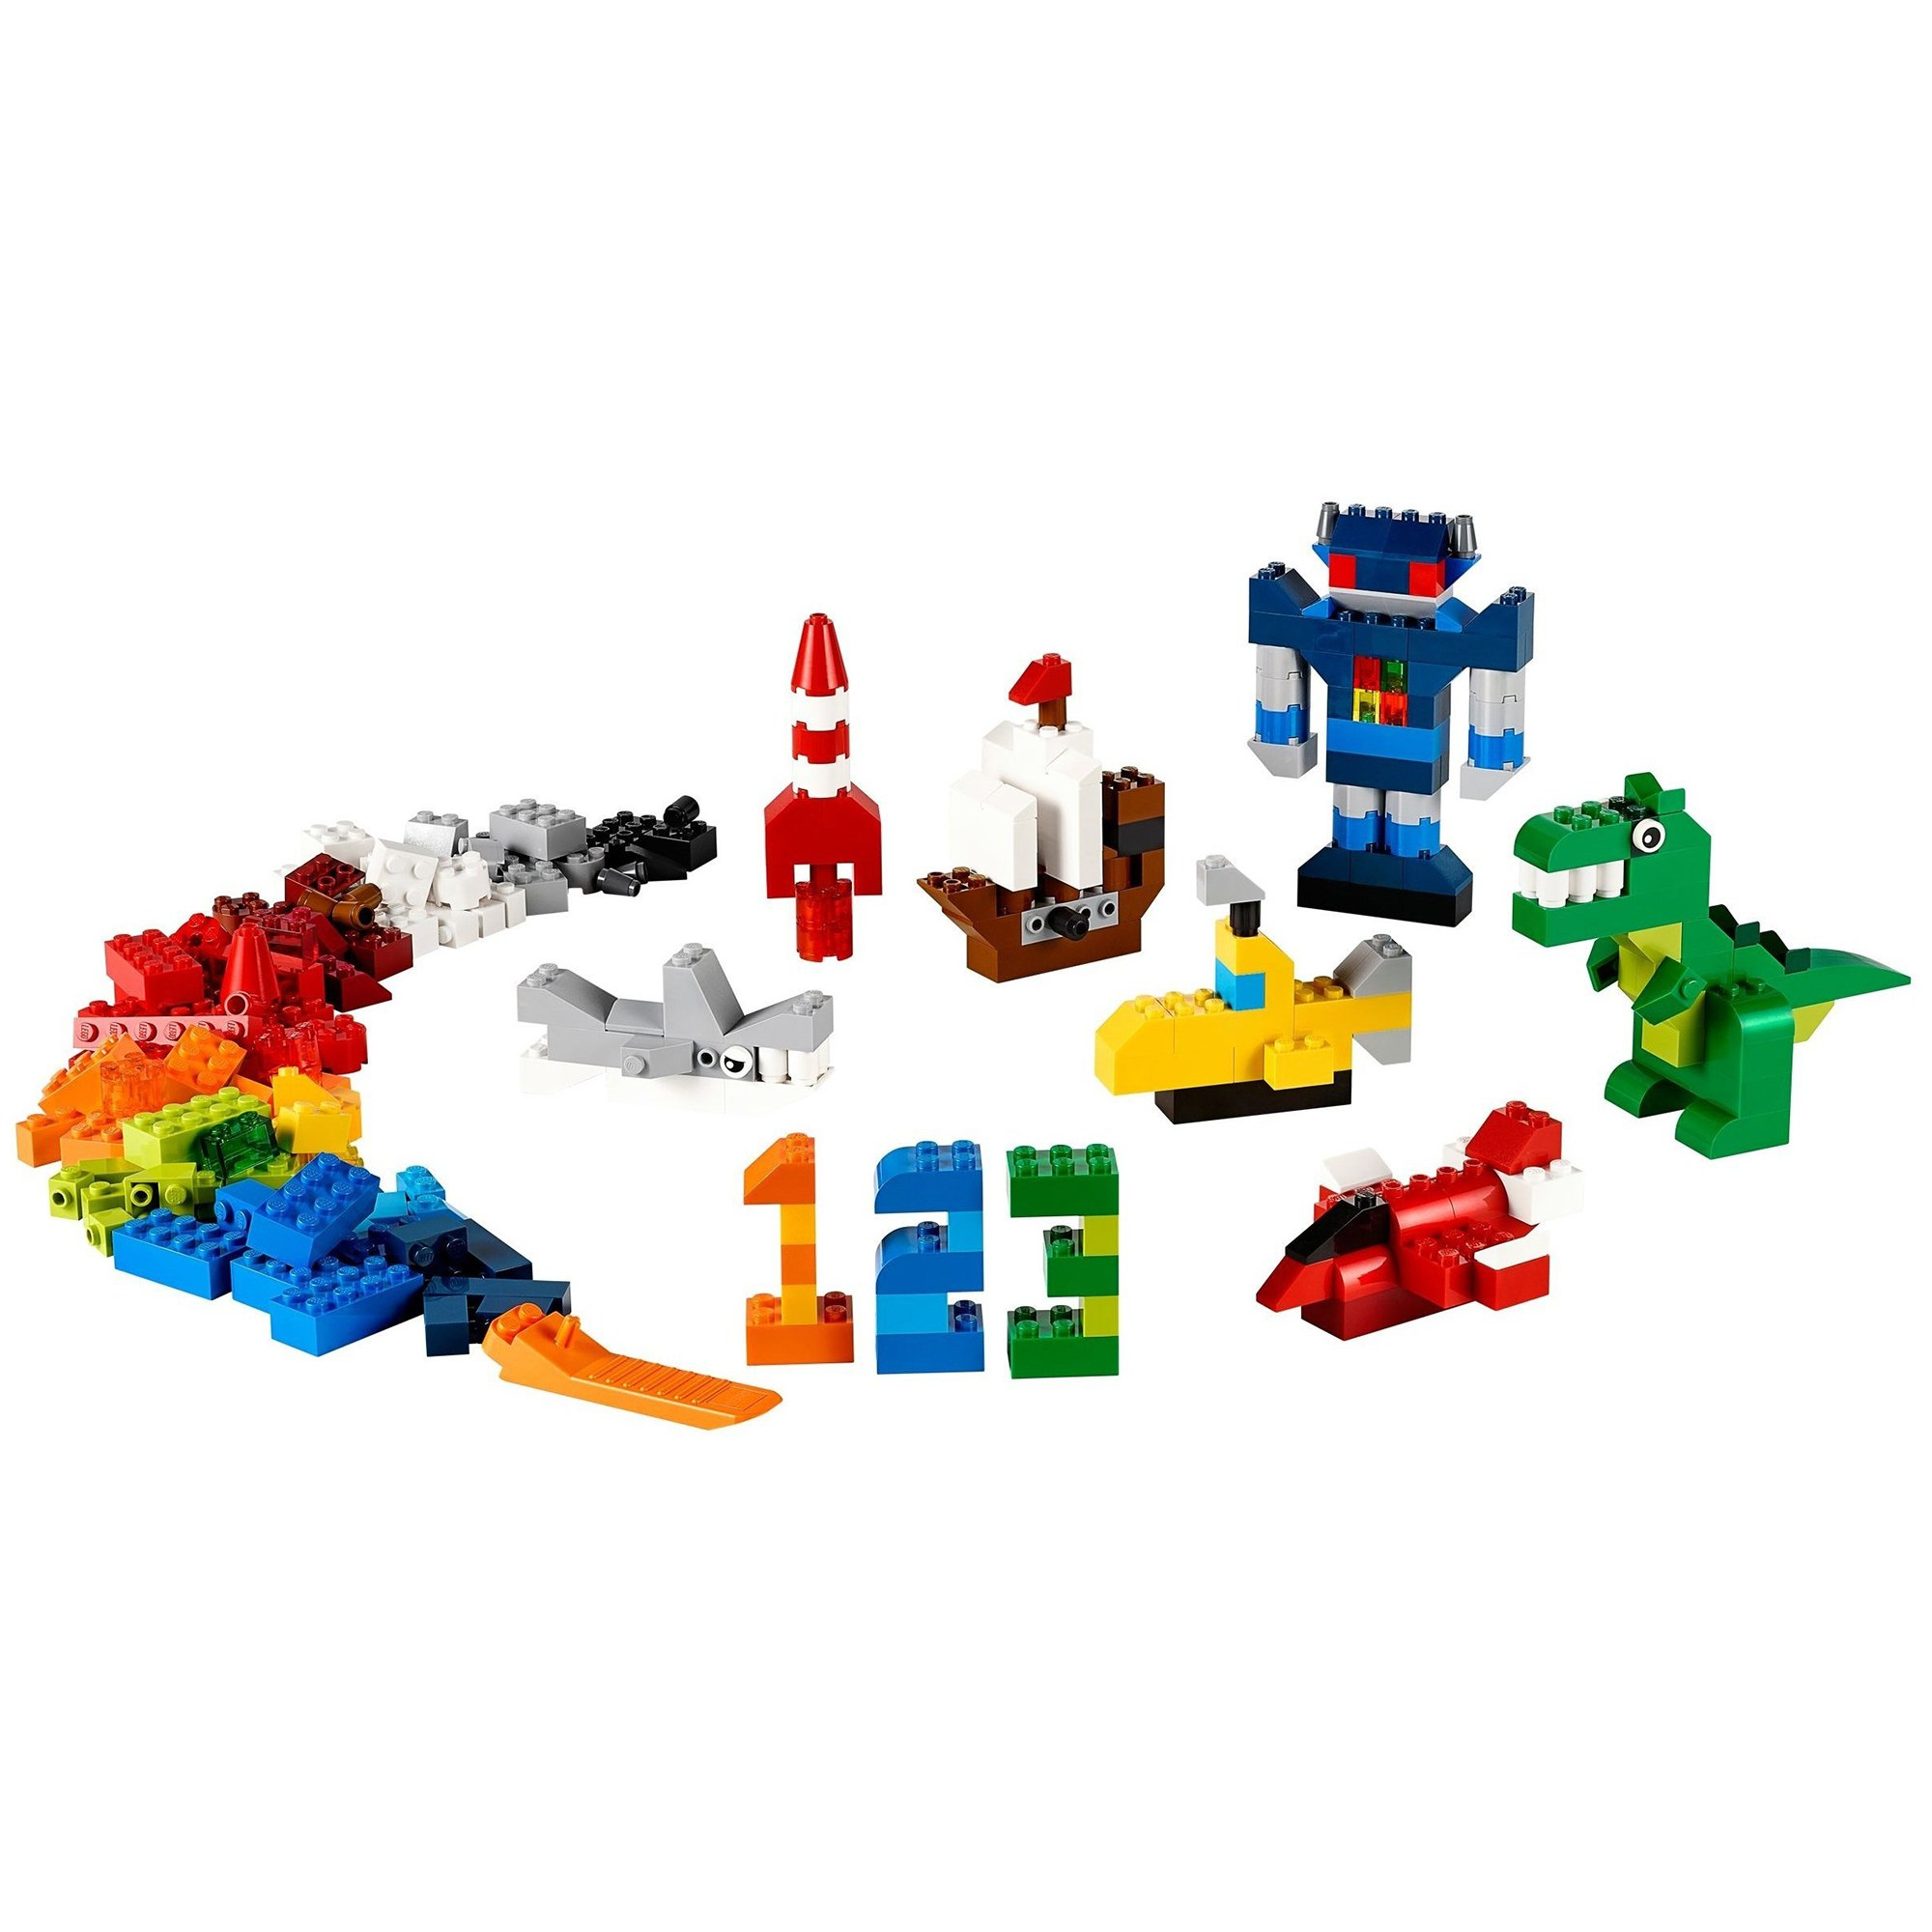 LEGO Classic Creative Supplement for All Builders with 303 Pieces | 10693